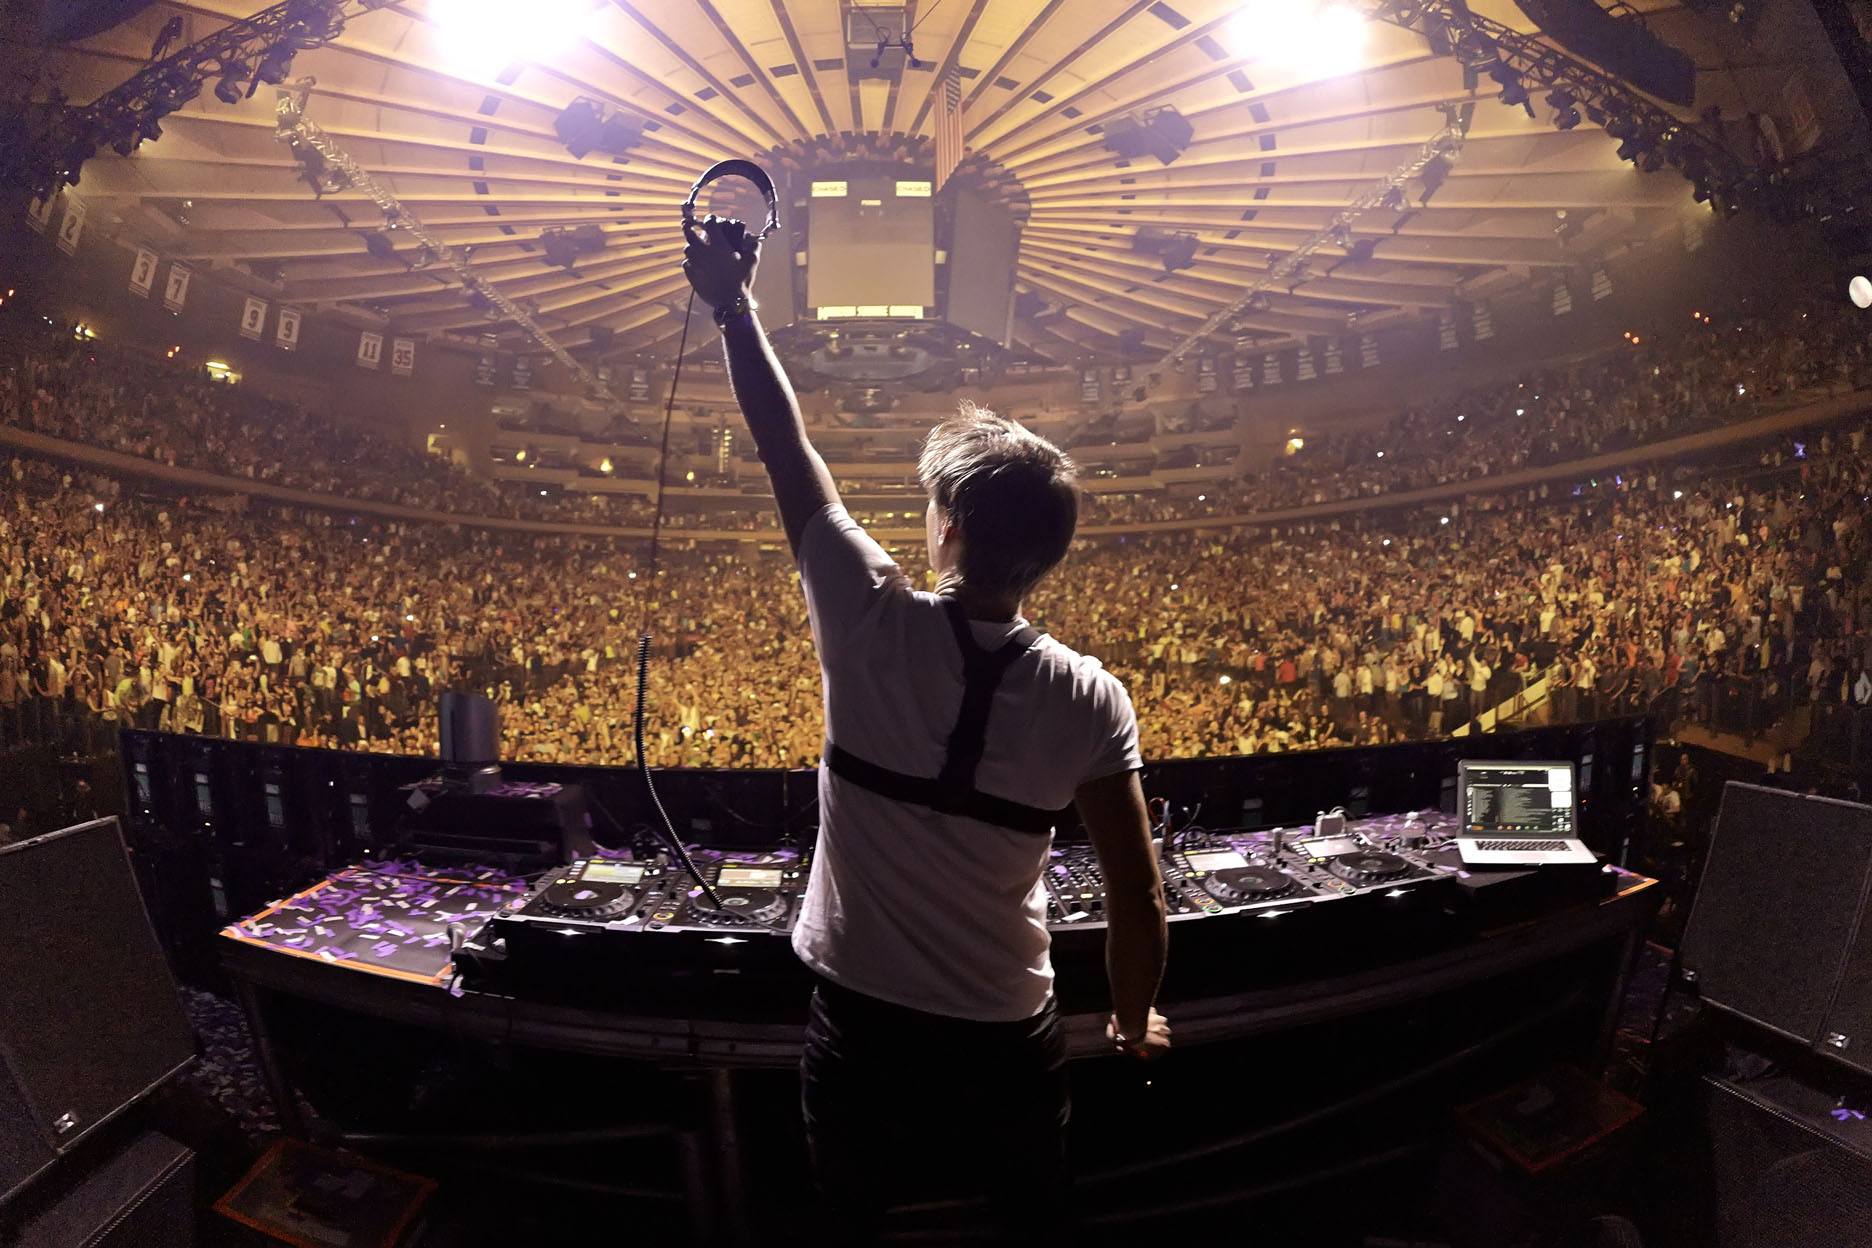 March 30, 2013: Armin van Buuren preforms at Madiosn Square Garden.